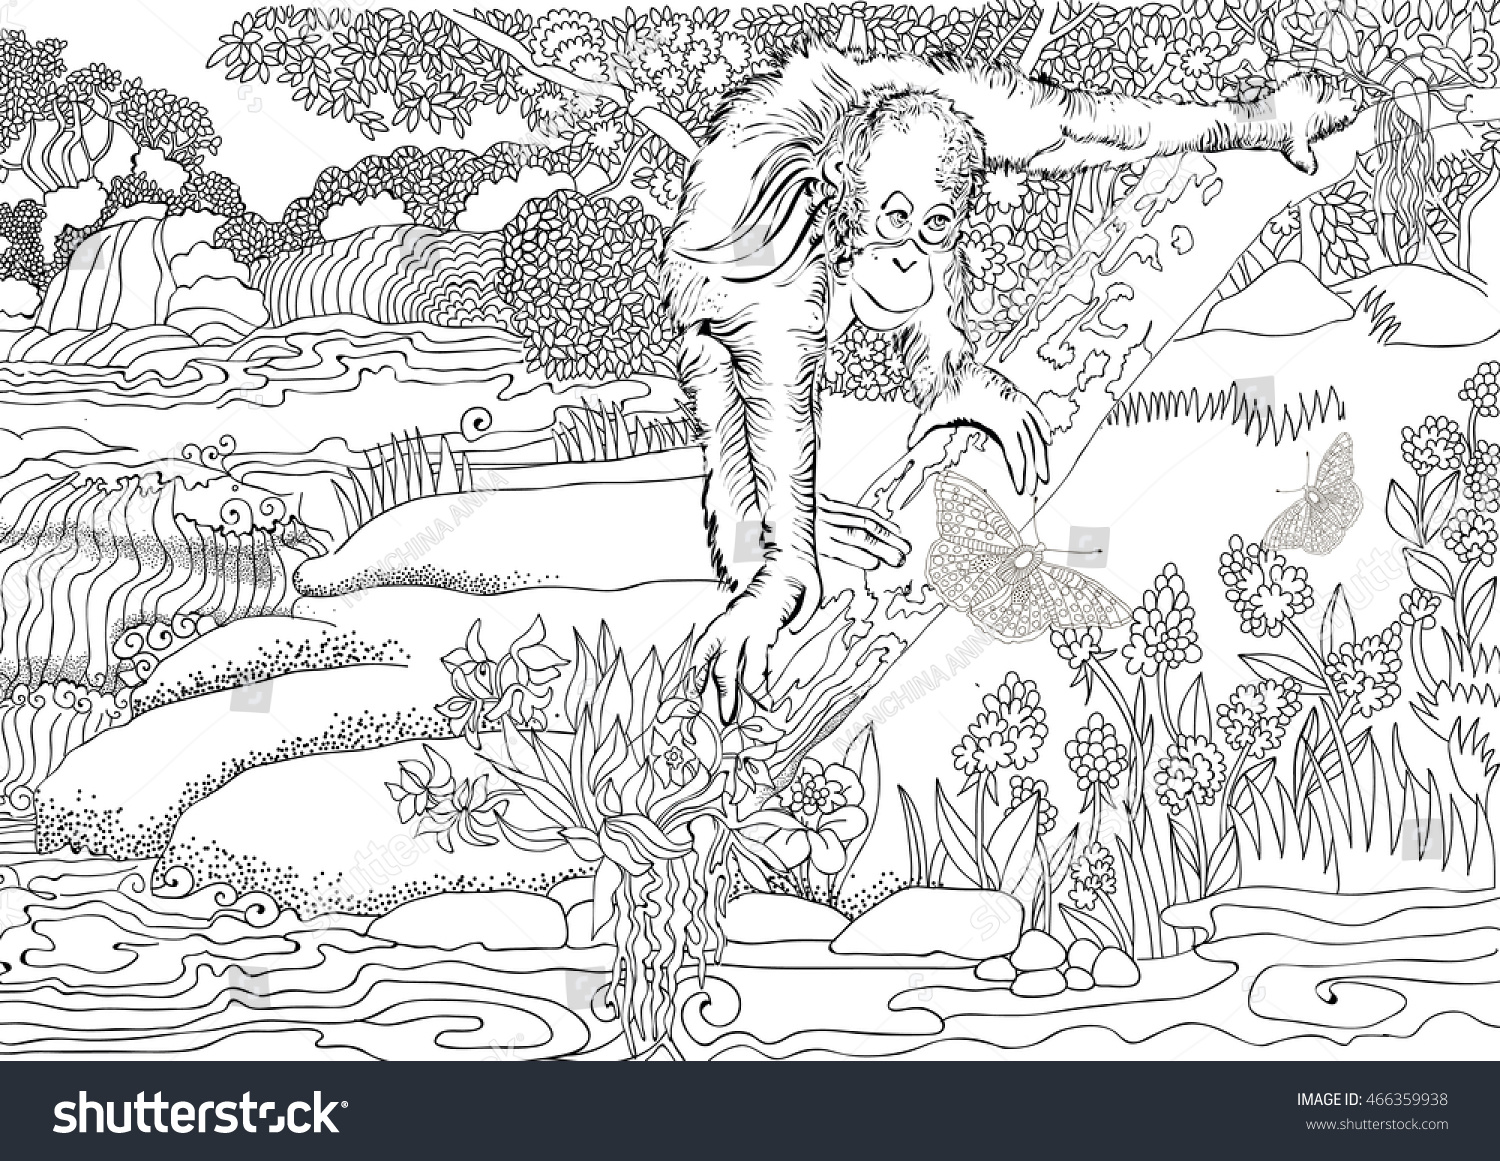 Coloring page . Jungle . Africa . Monkey on a tree . | EZ Canvas